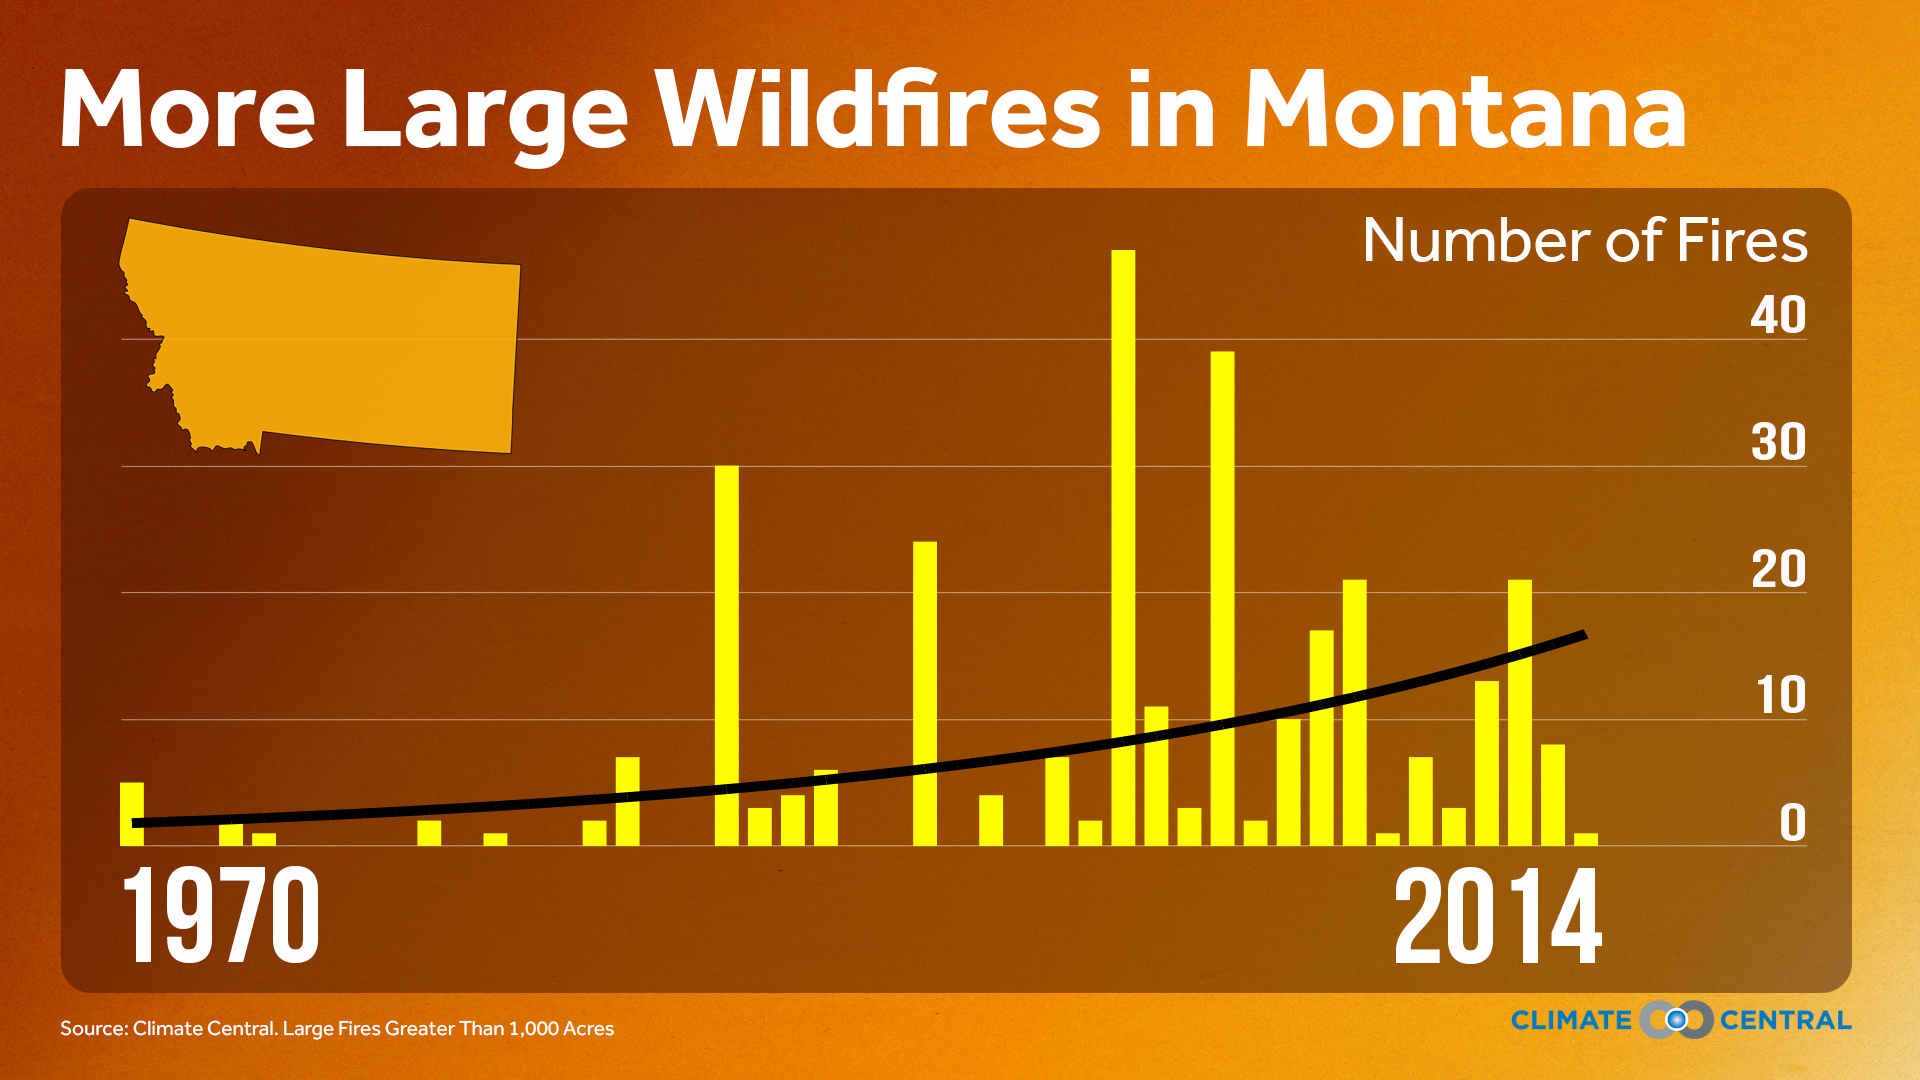 Wildfire trends in Montana